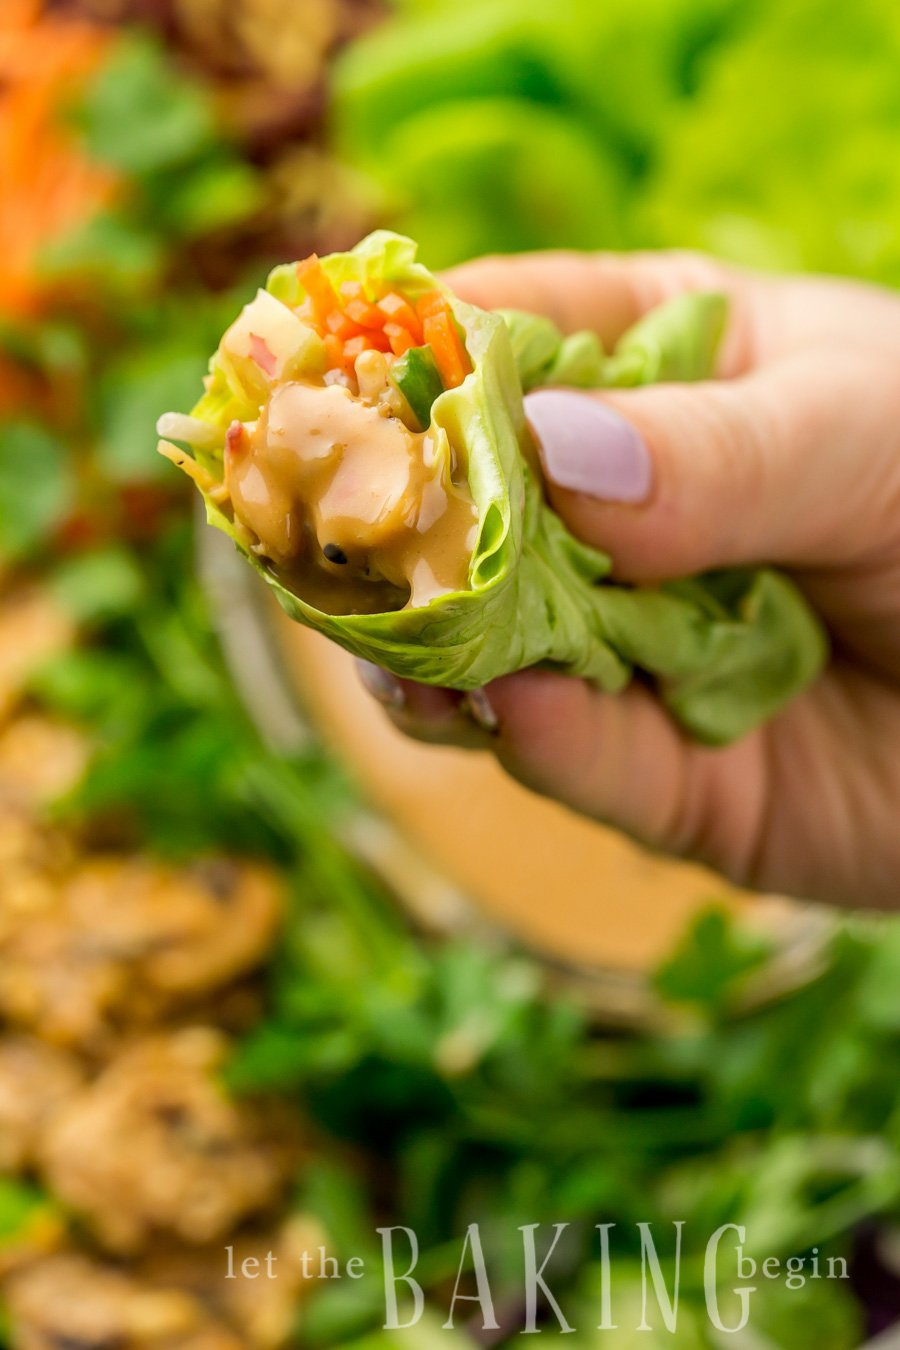 Lettuce wrap with chicken and a peanut sauce wrapped and being held.